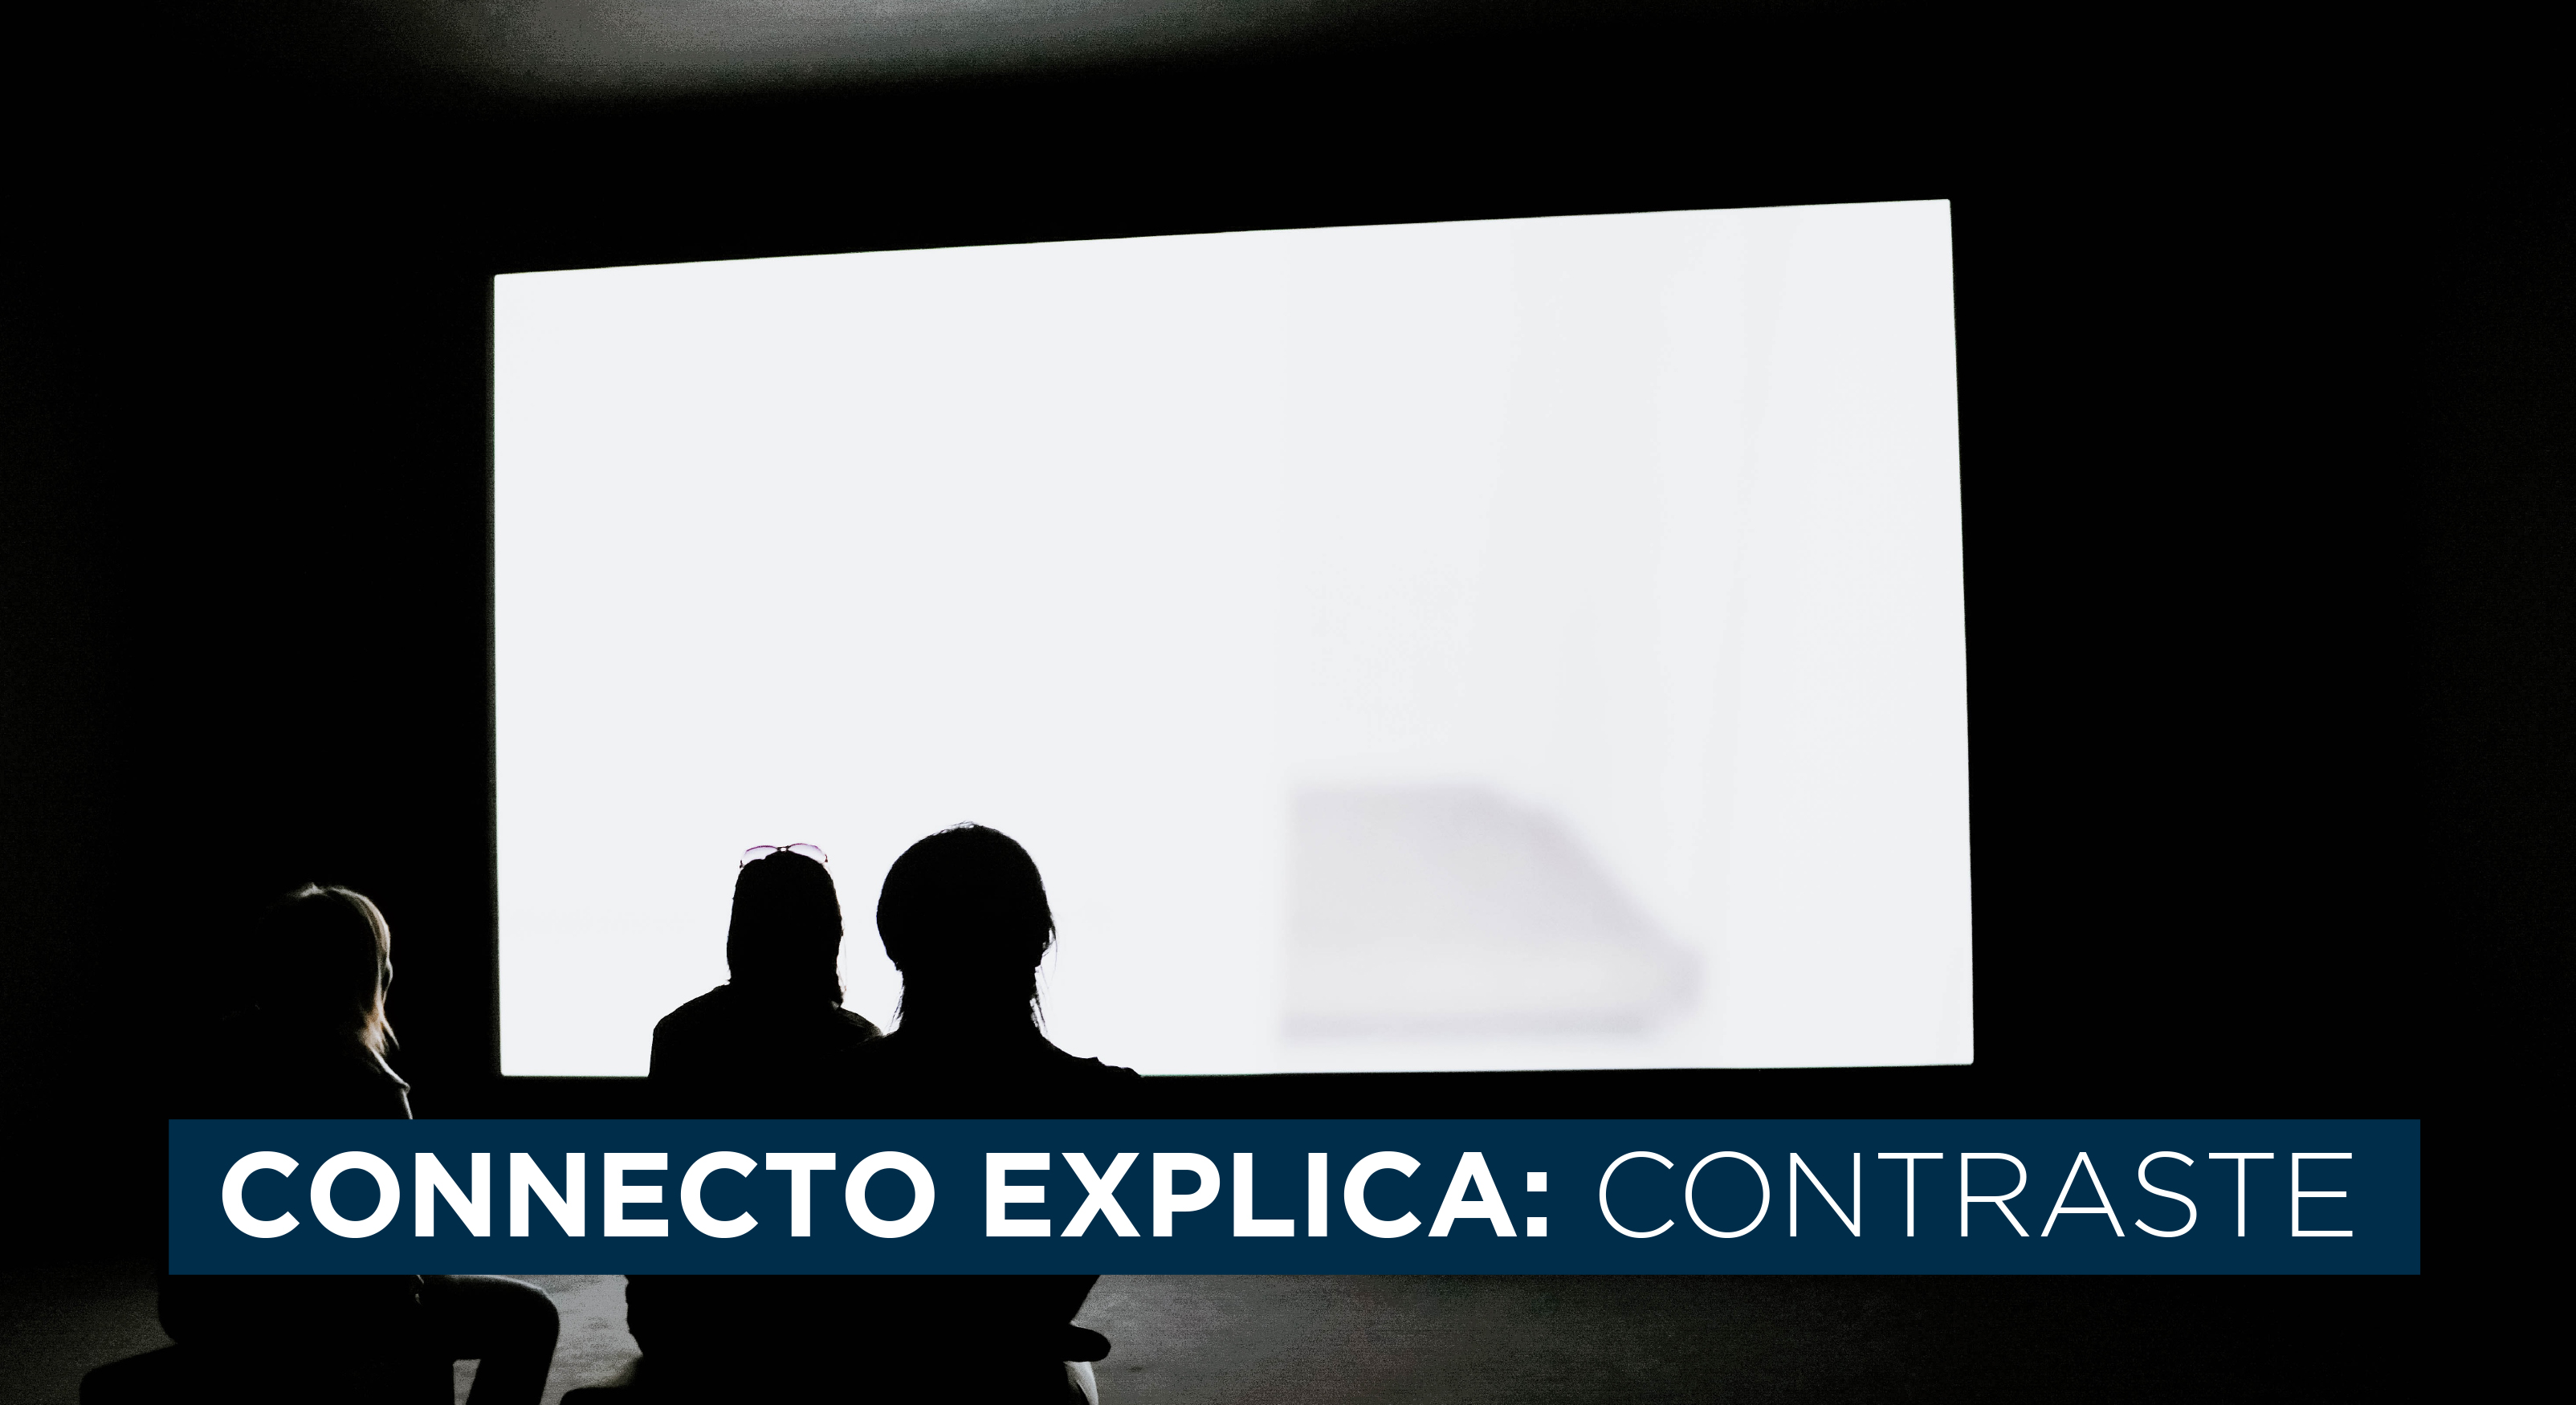 Connecto explica - Contraste: